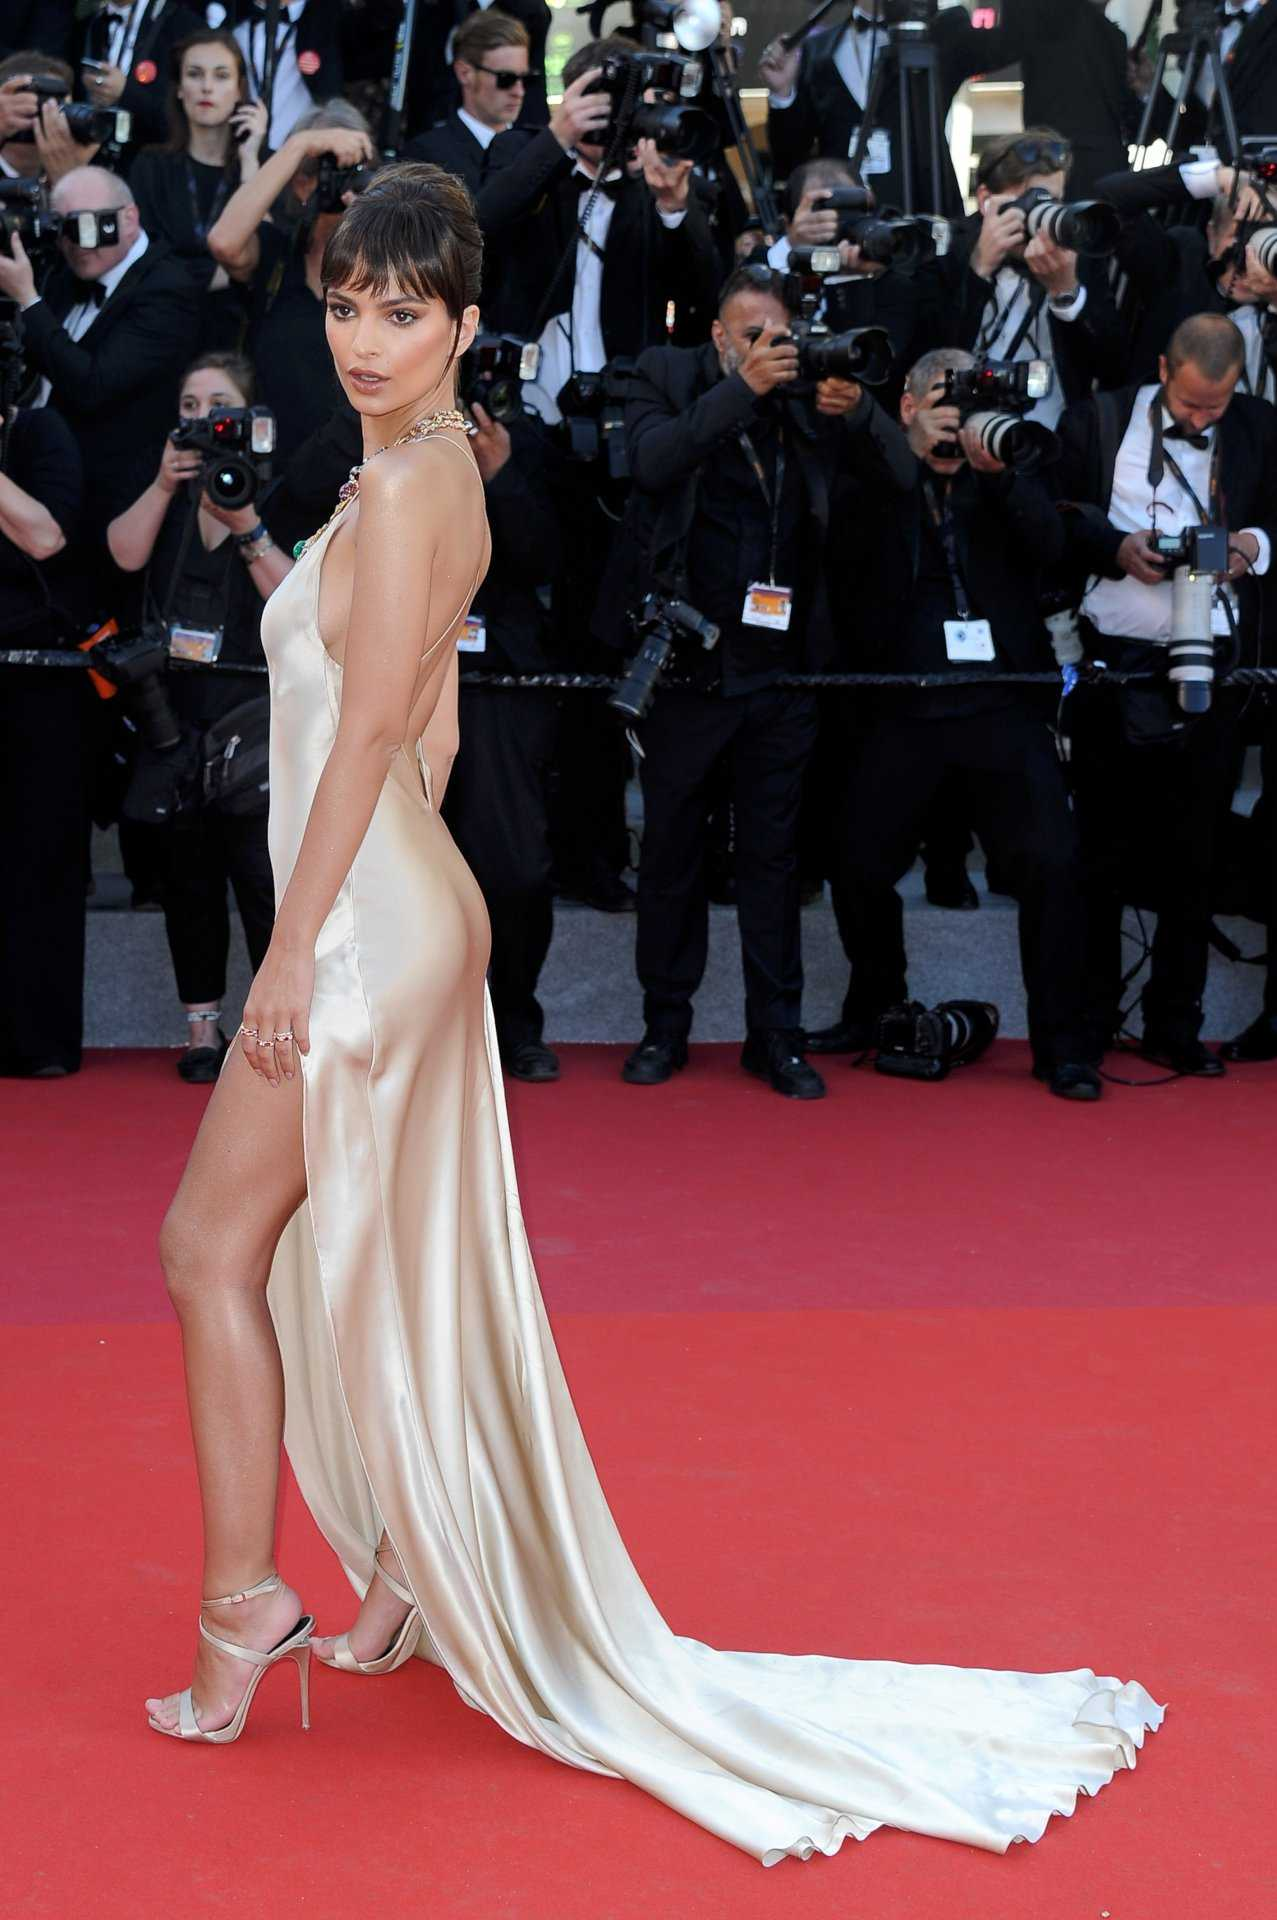 Emily Ratajkowski Red Carpet Pics - Emily Ratajkowski Net Worth, Pics, Wallpapers, Career and Biography